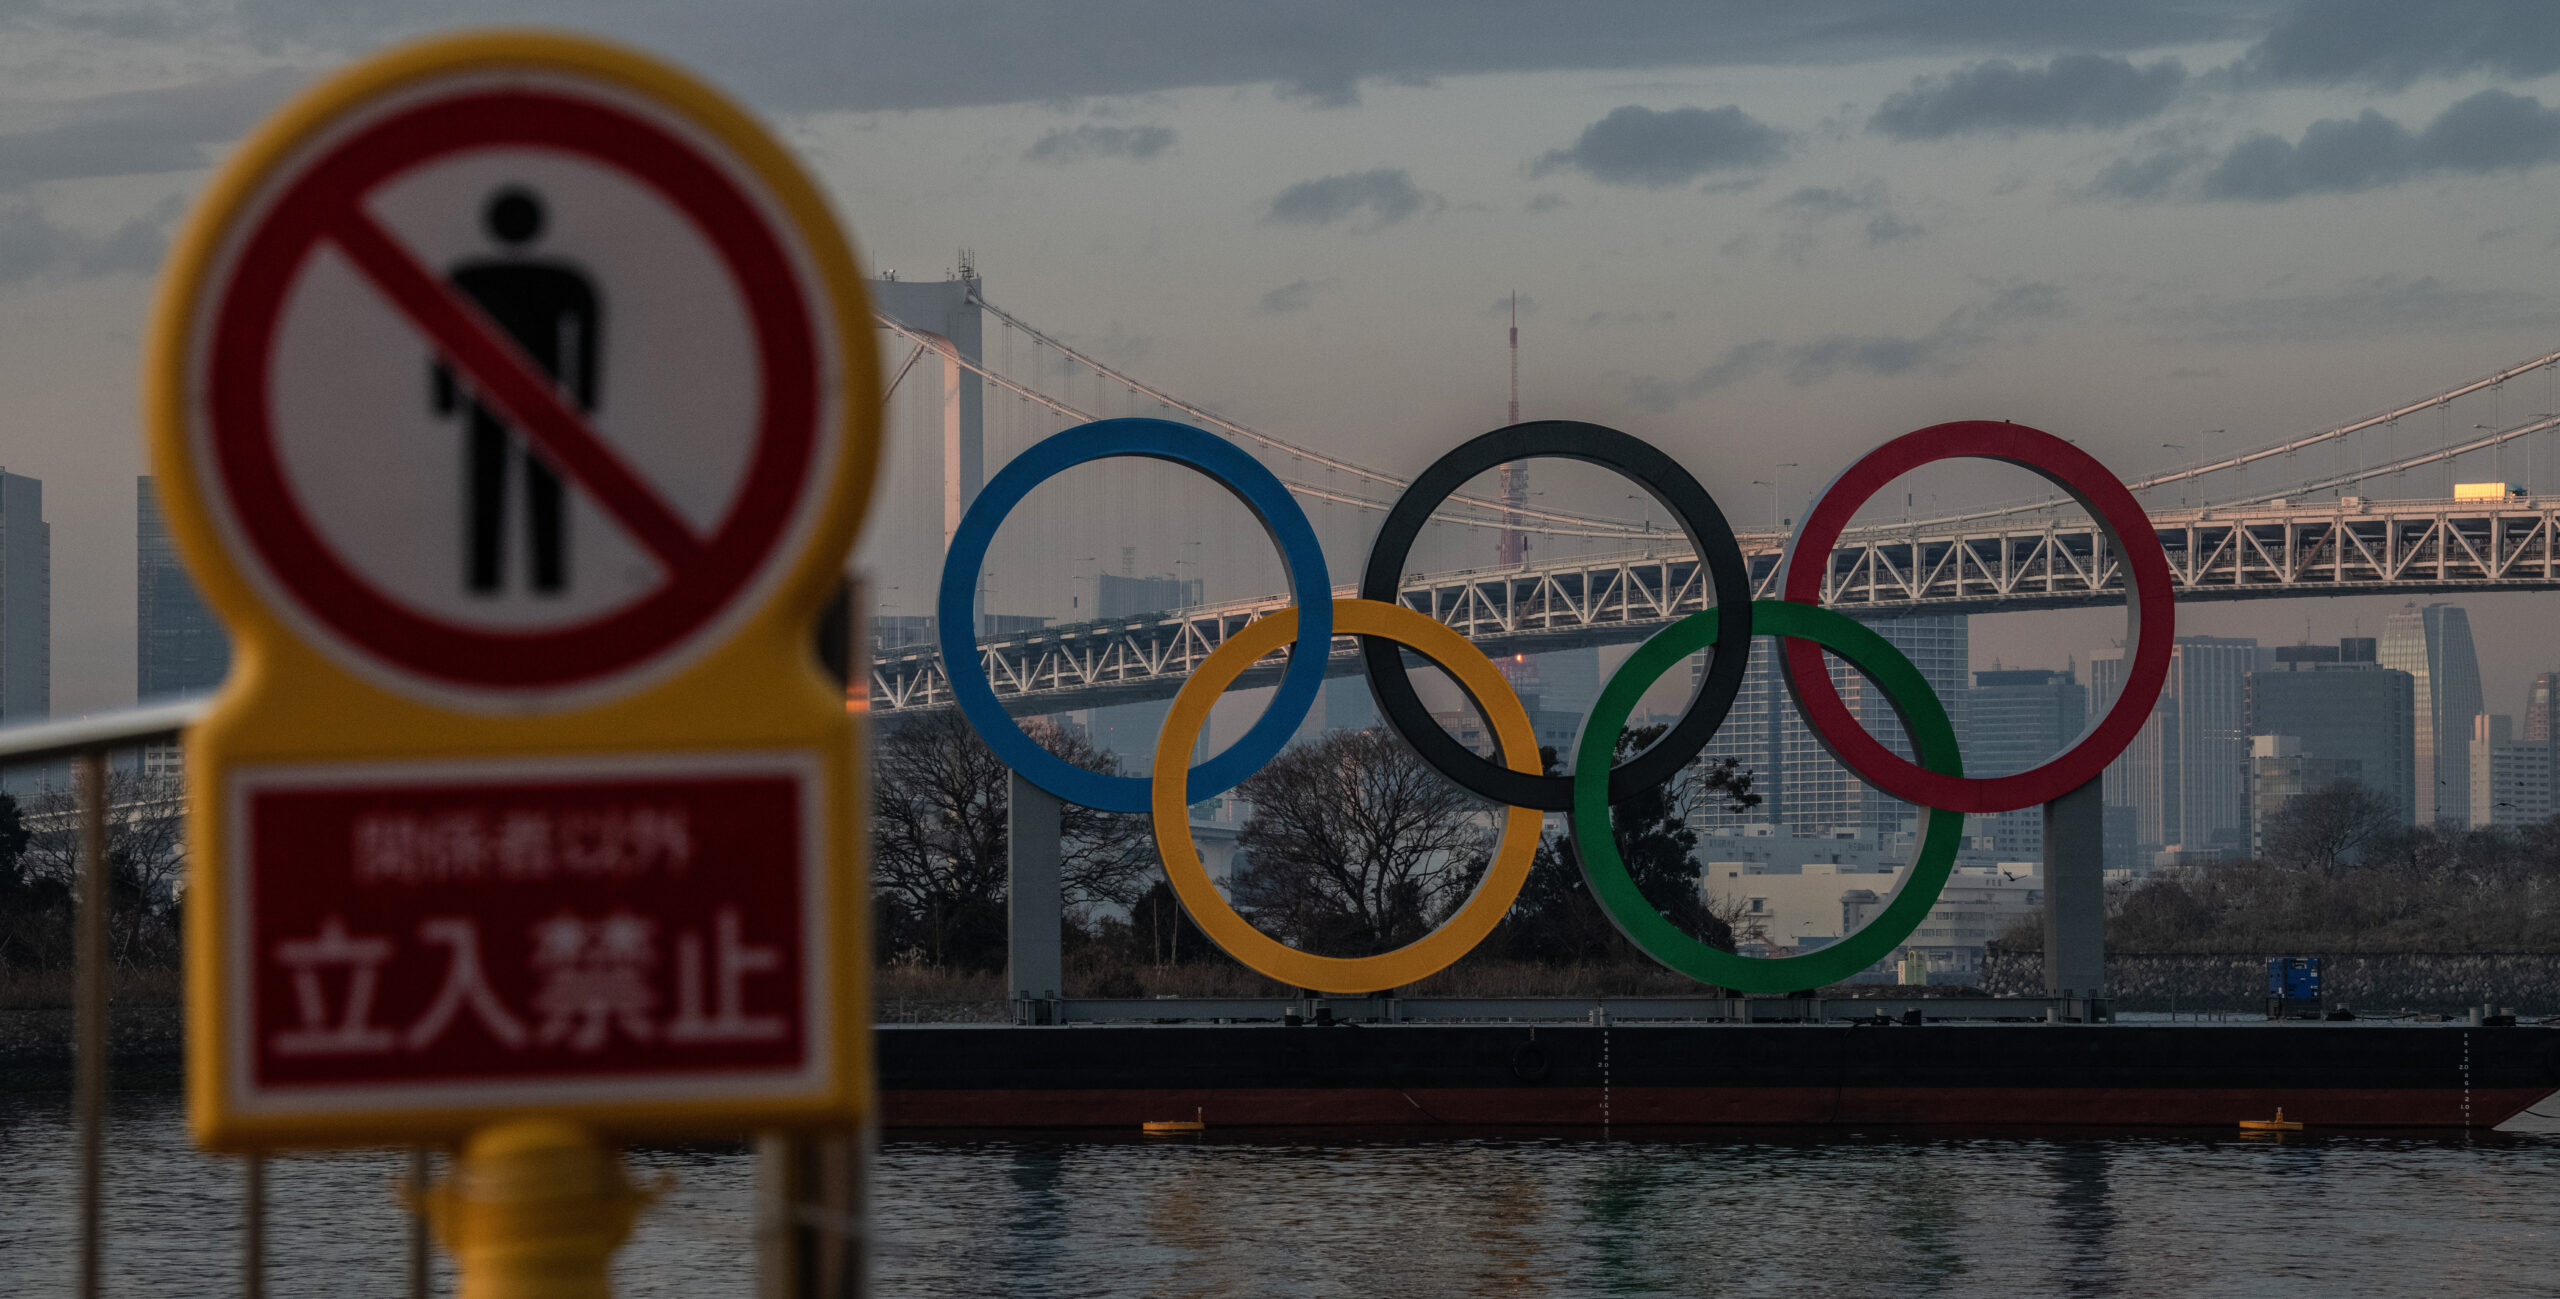 We're watching you: Strict rules issued to Tokyo 2020 journalists